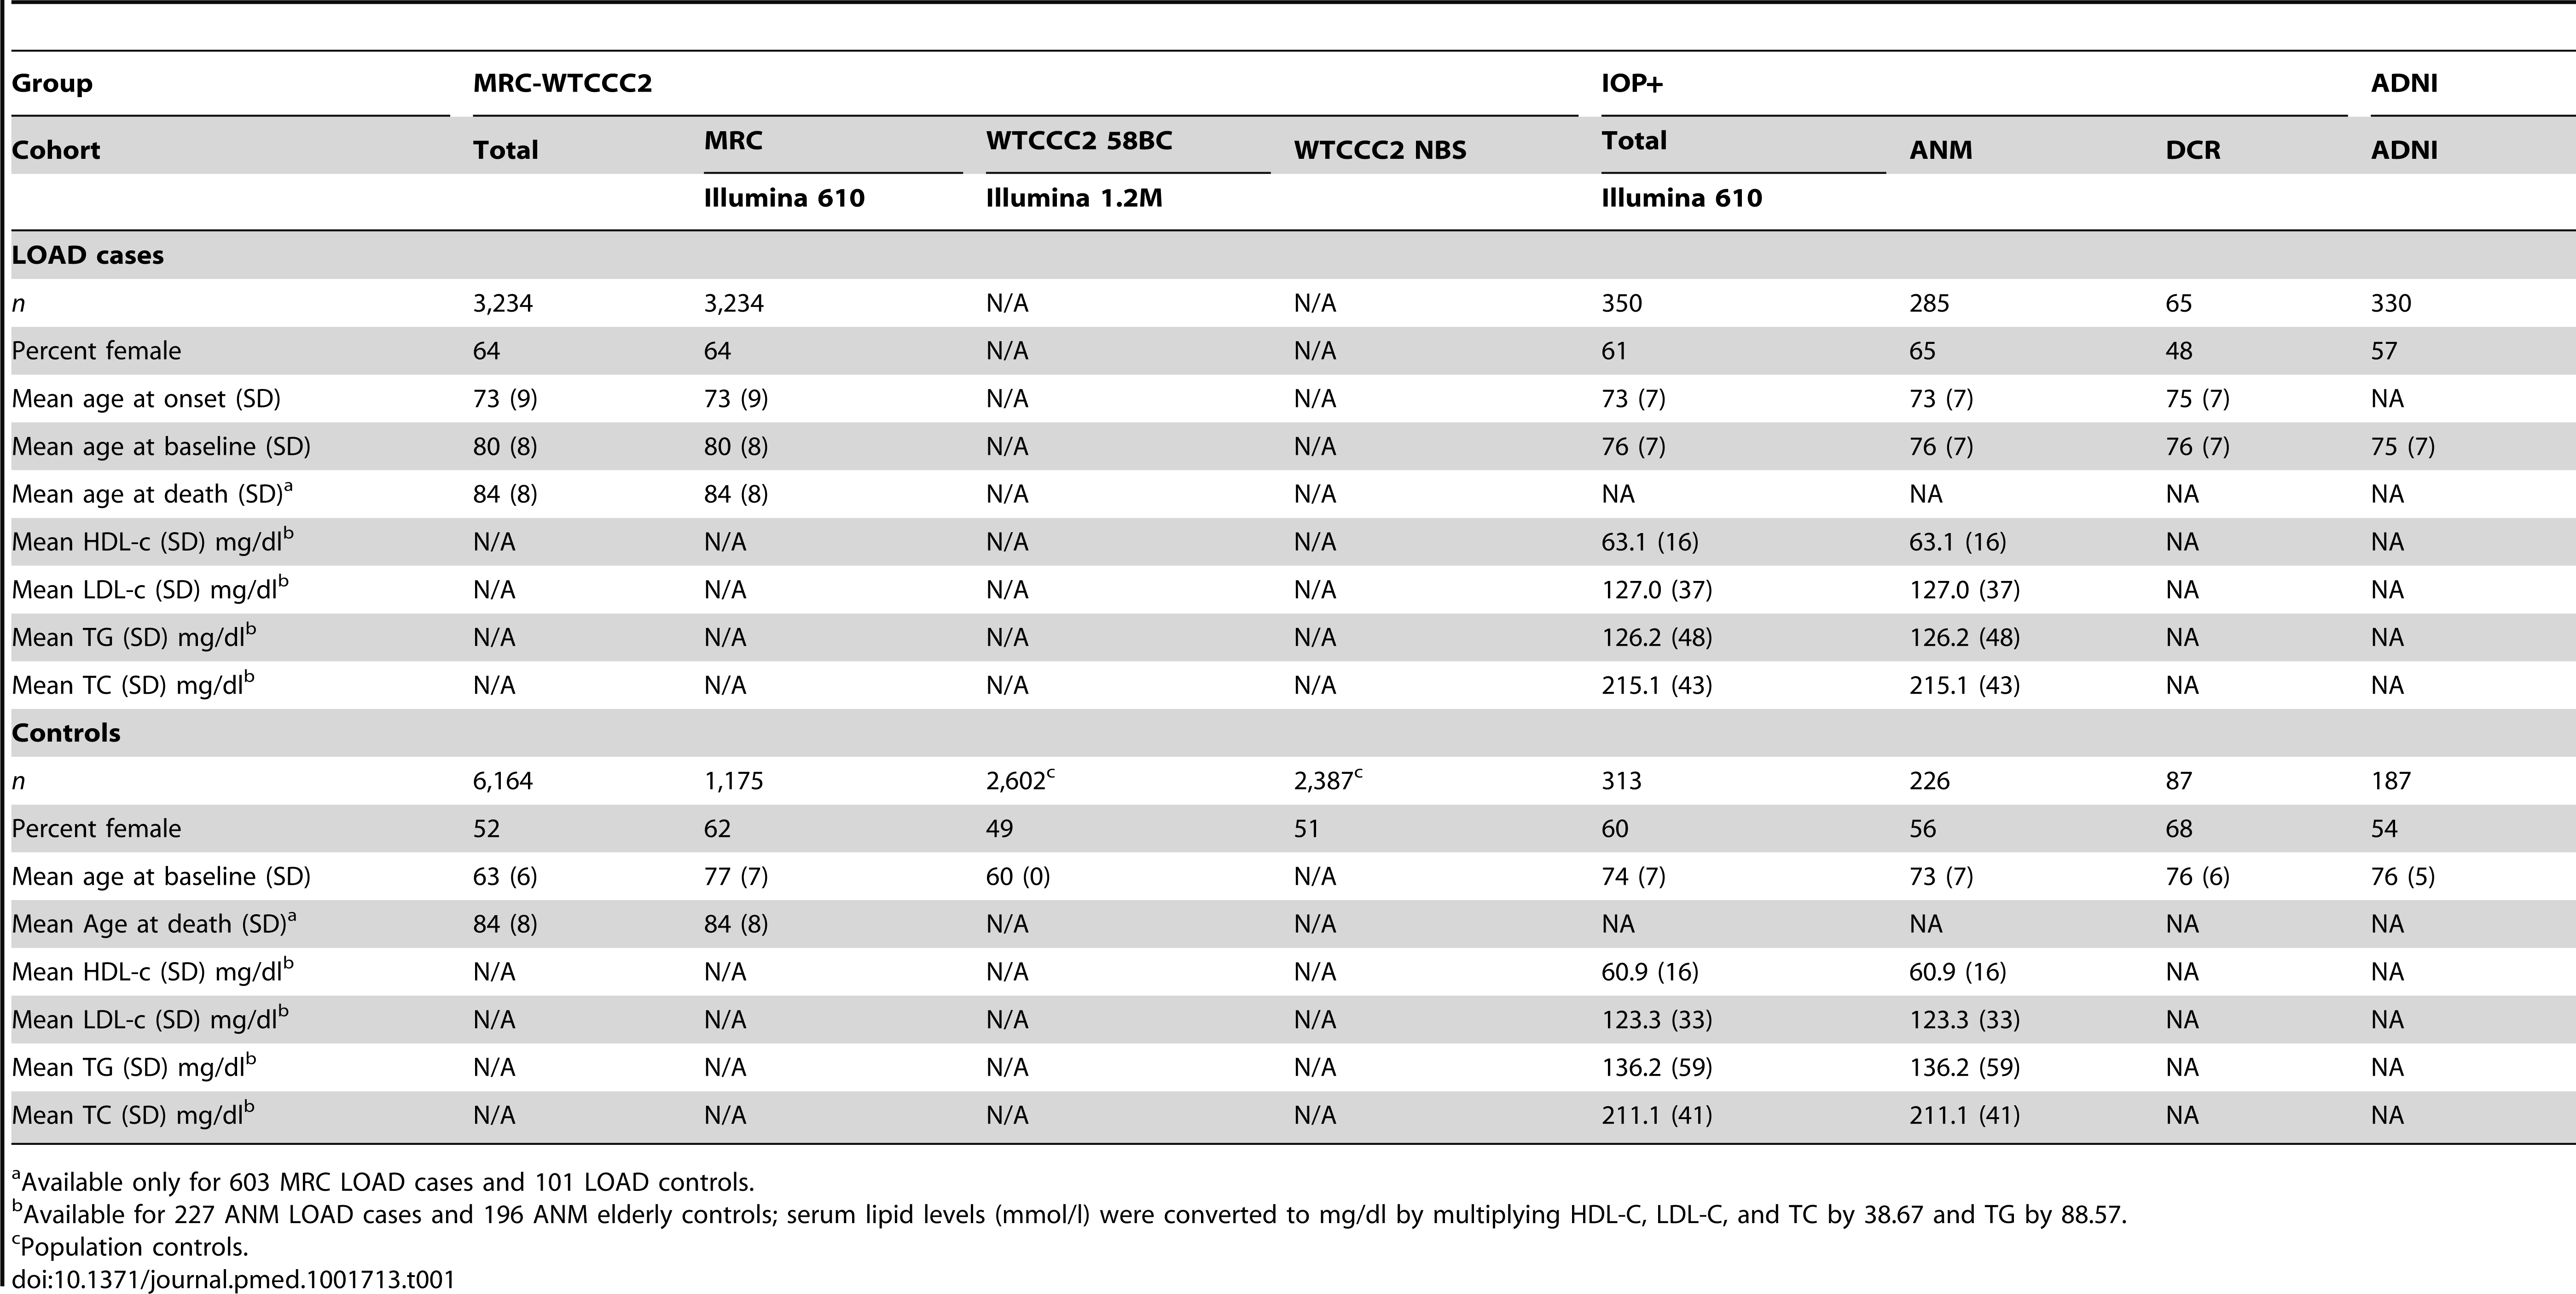 Characteristics of the participants in the MRC-WTCCC2, the IOP+, and ADNI study groups who passed GWA and imputation QC, broken down by cohort and by disease status.